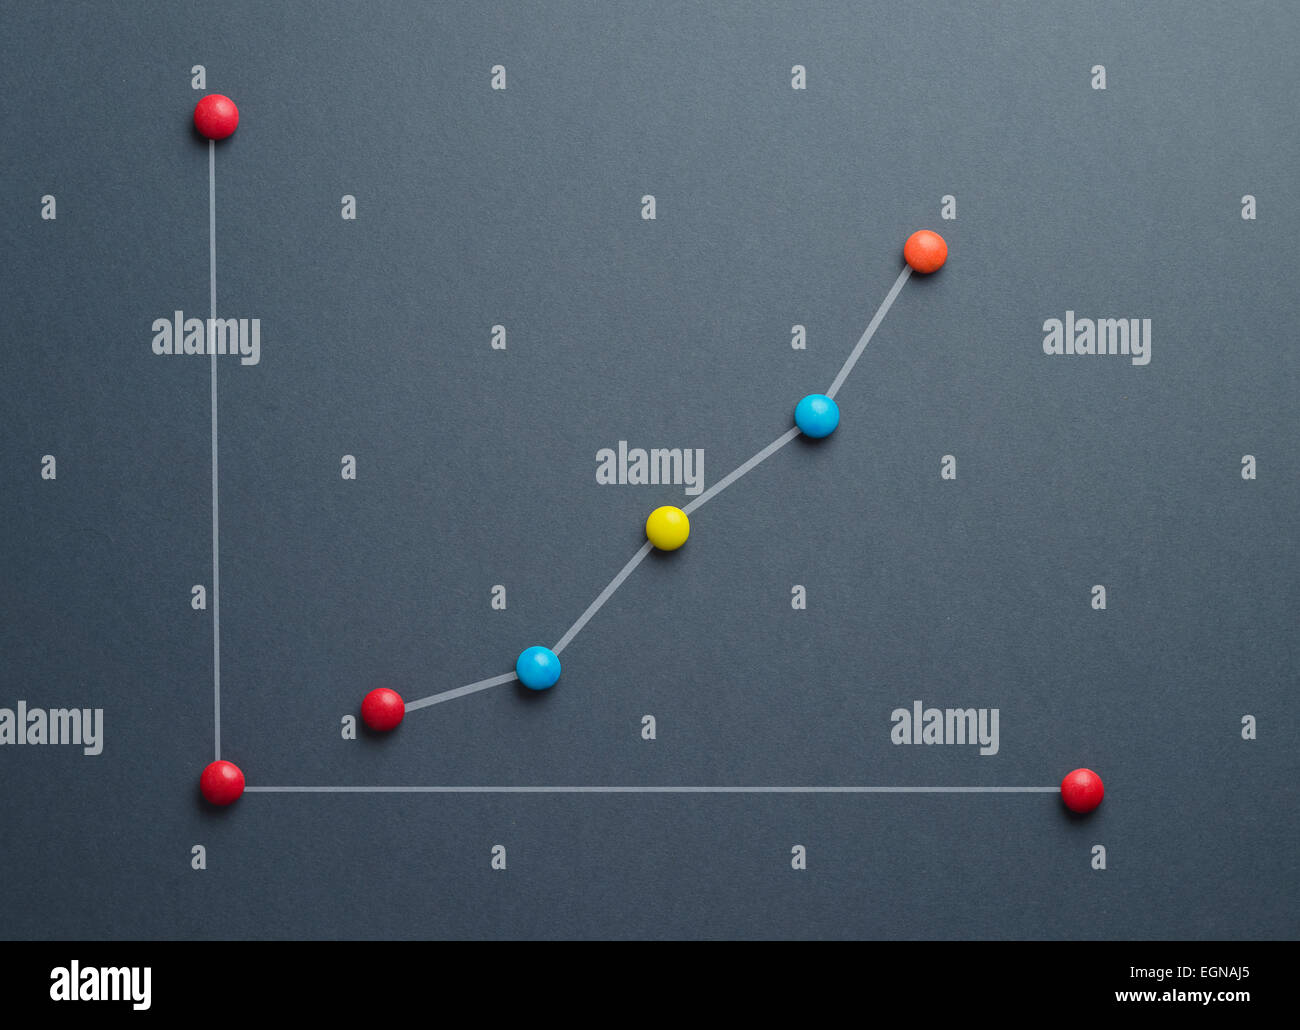 Growth graph concept made of colorful button shaped candies over dark blue background. This image is a photograph - Stock Image